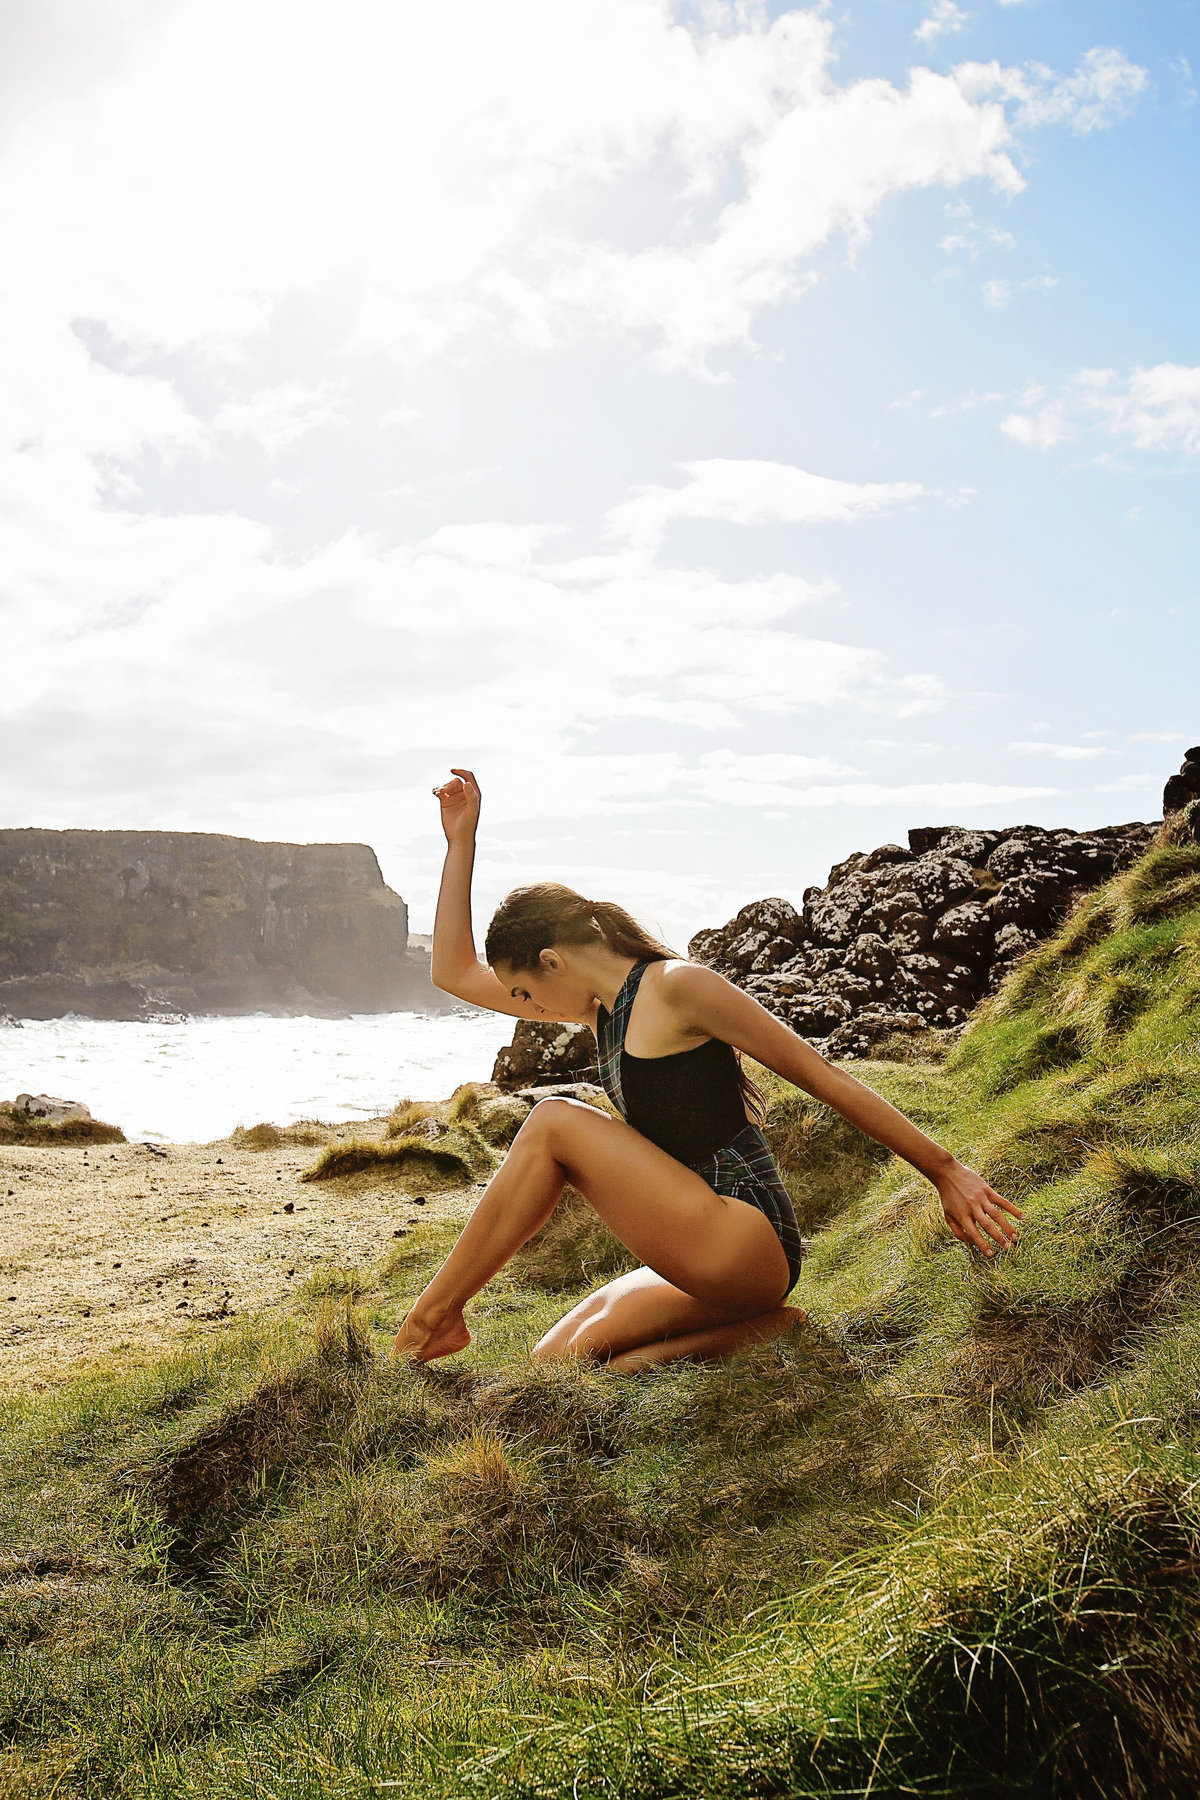 dancer in northern ireland nature pose